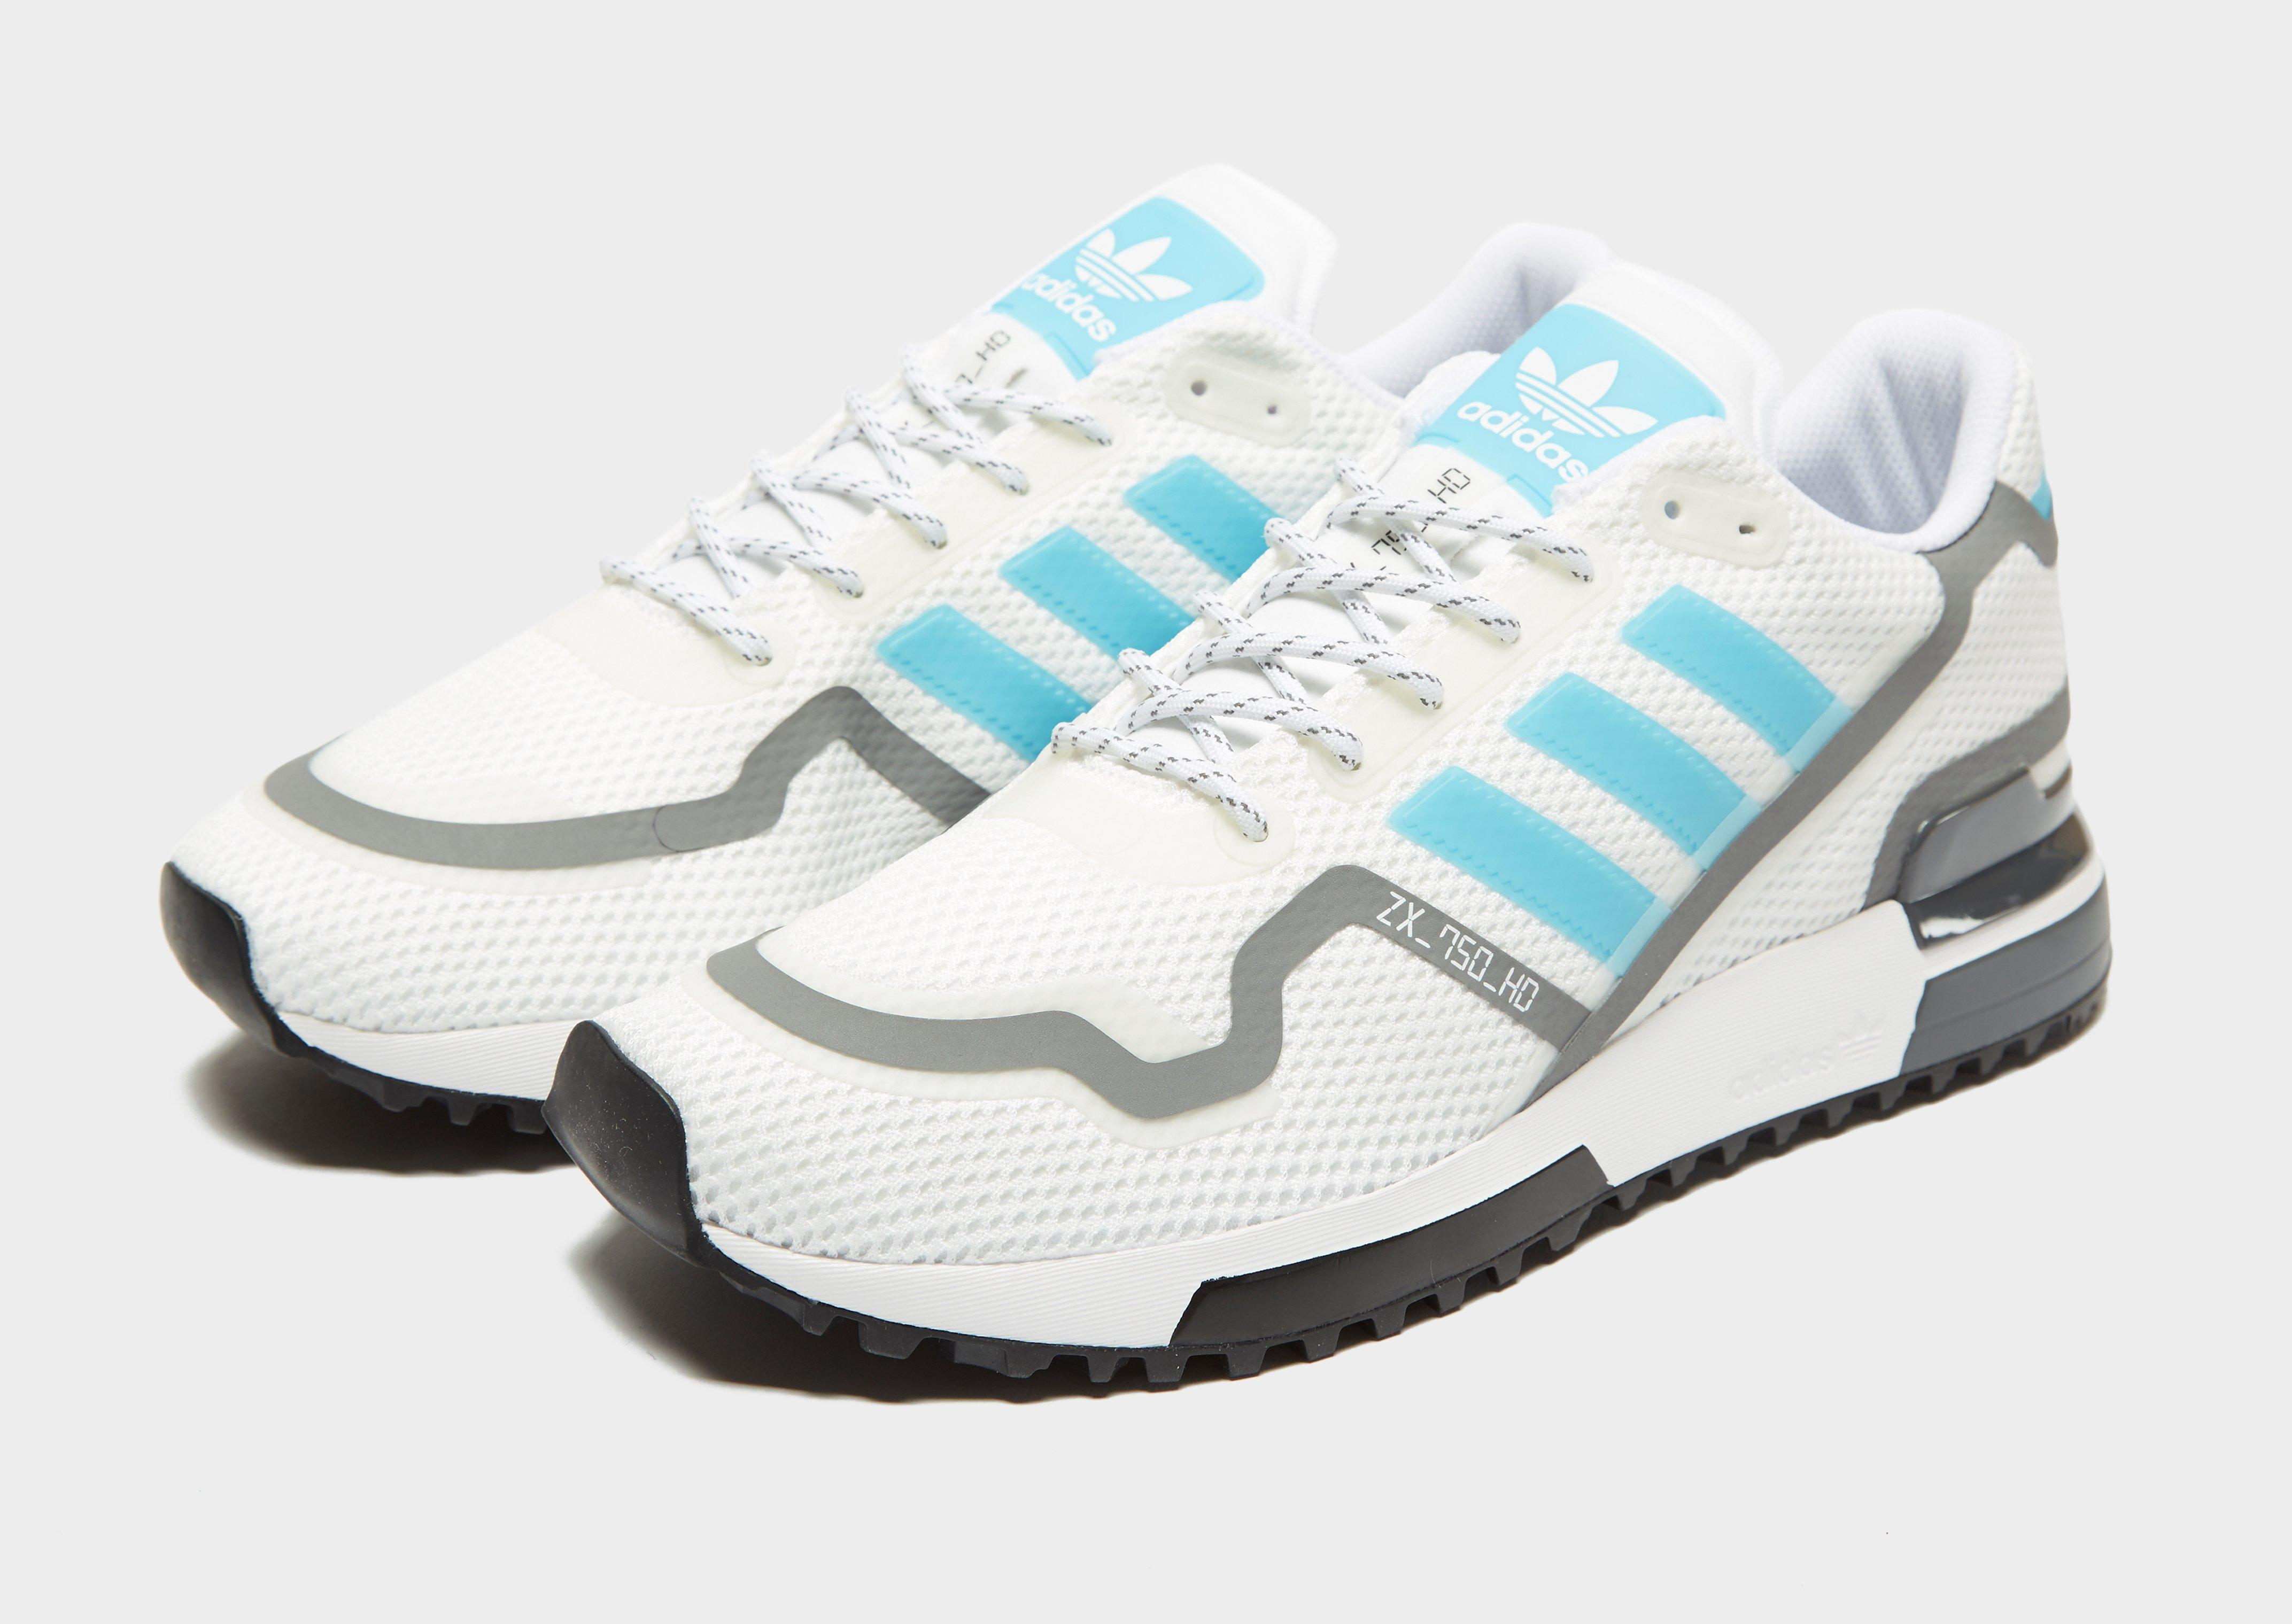 adidas zx 750 all white